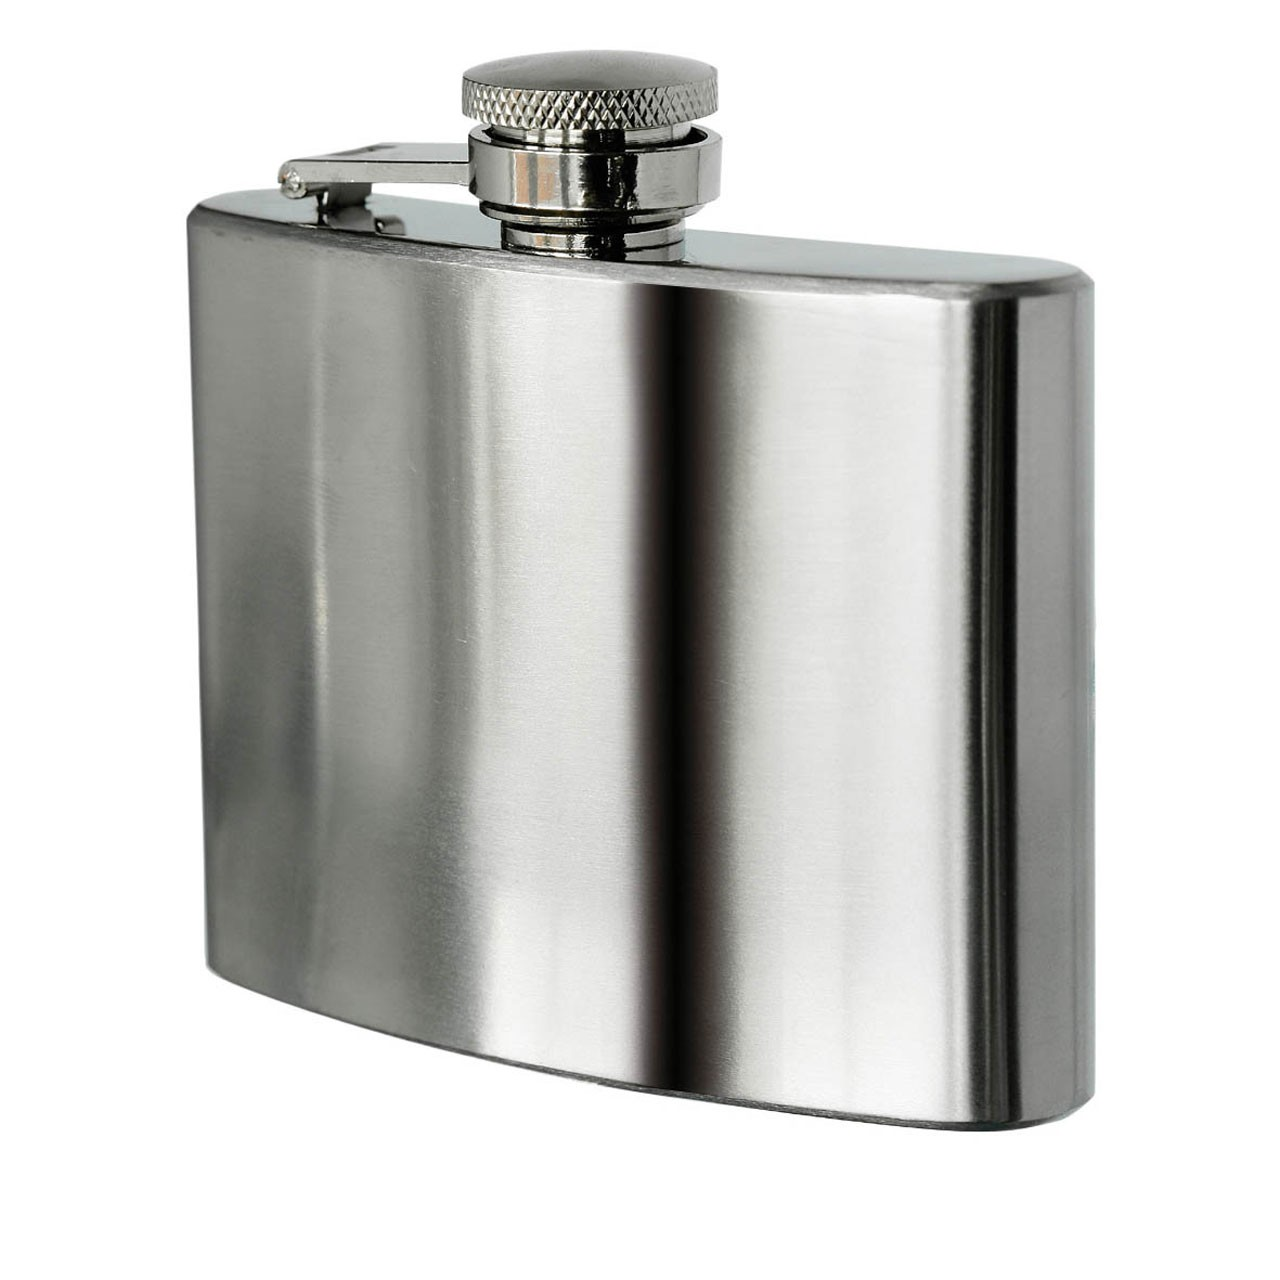 Prime Furnishing Hip Flask, 5 oz, Stainless Steel